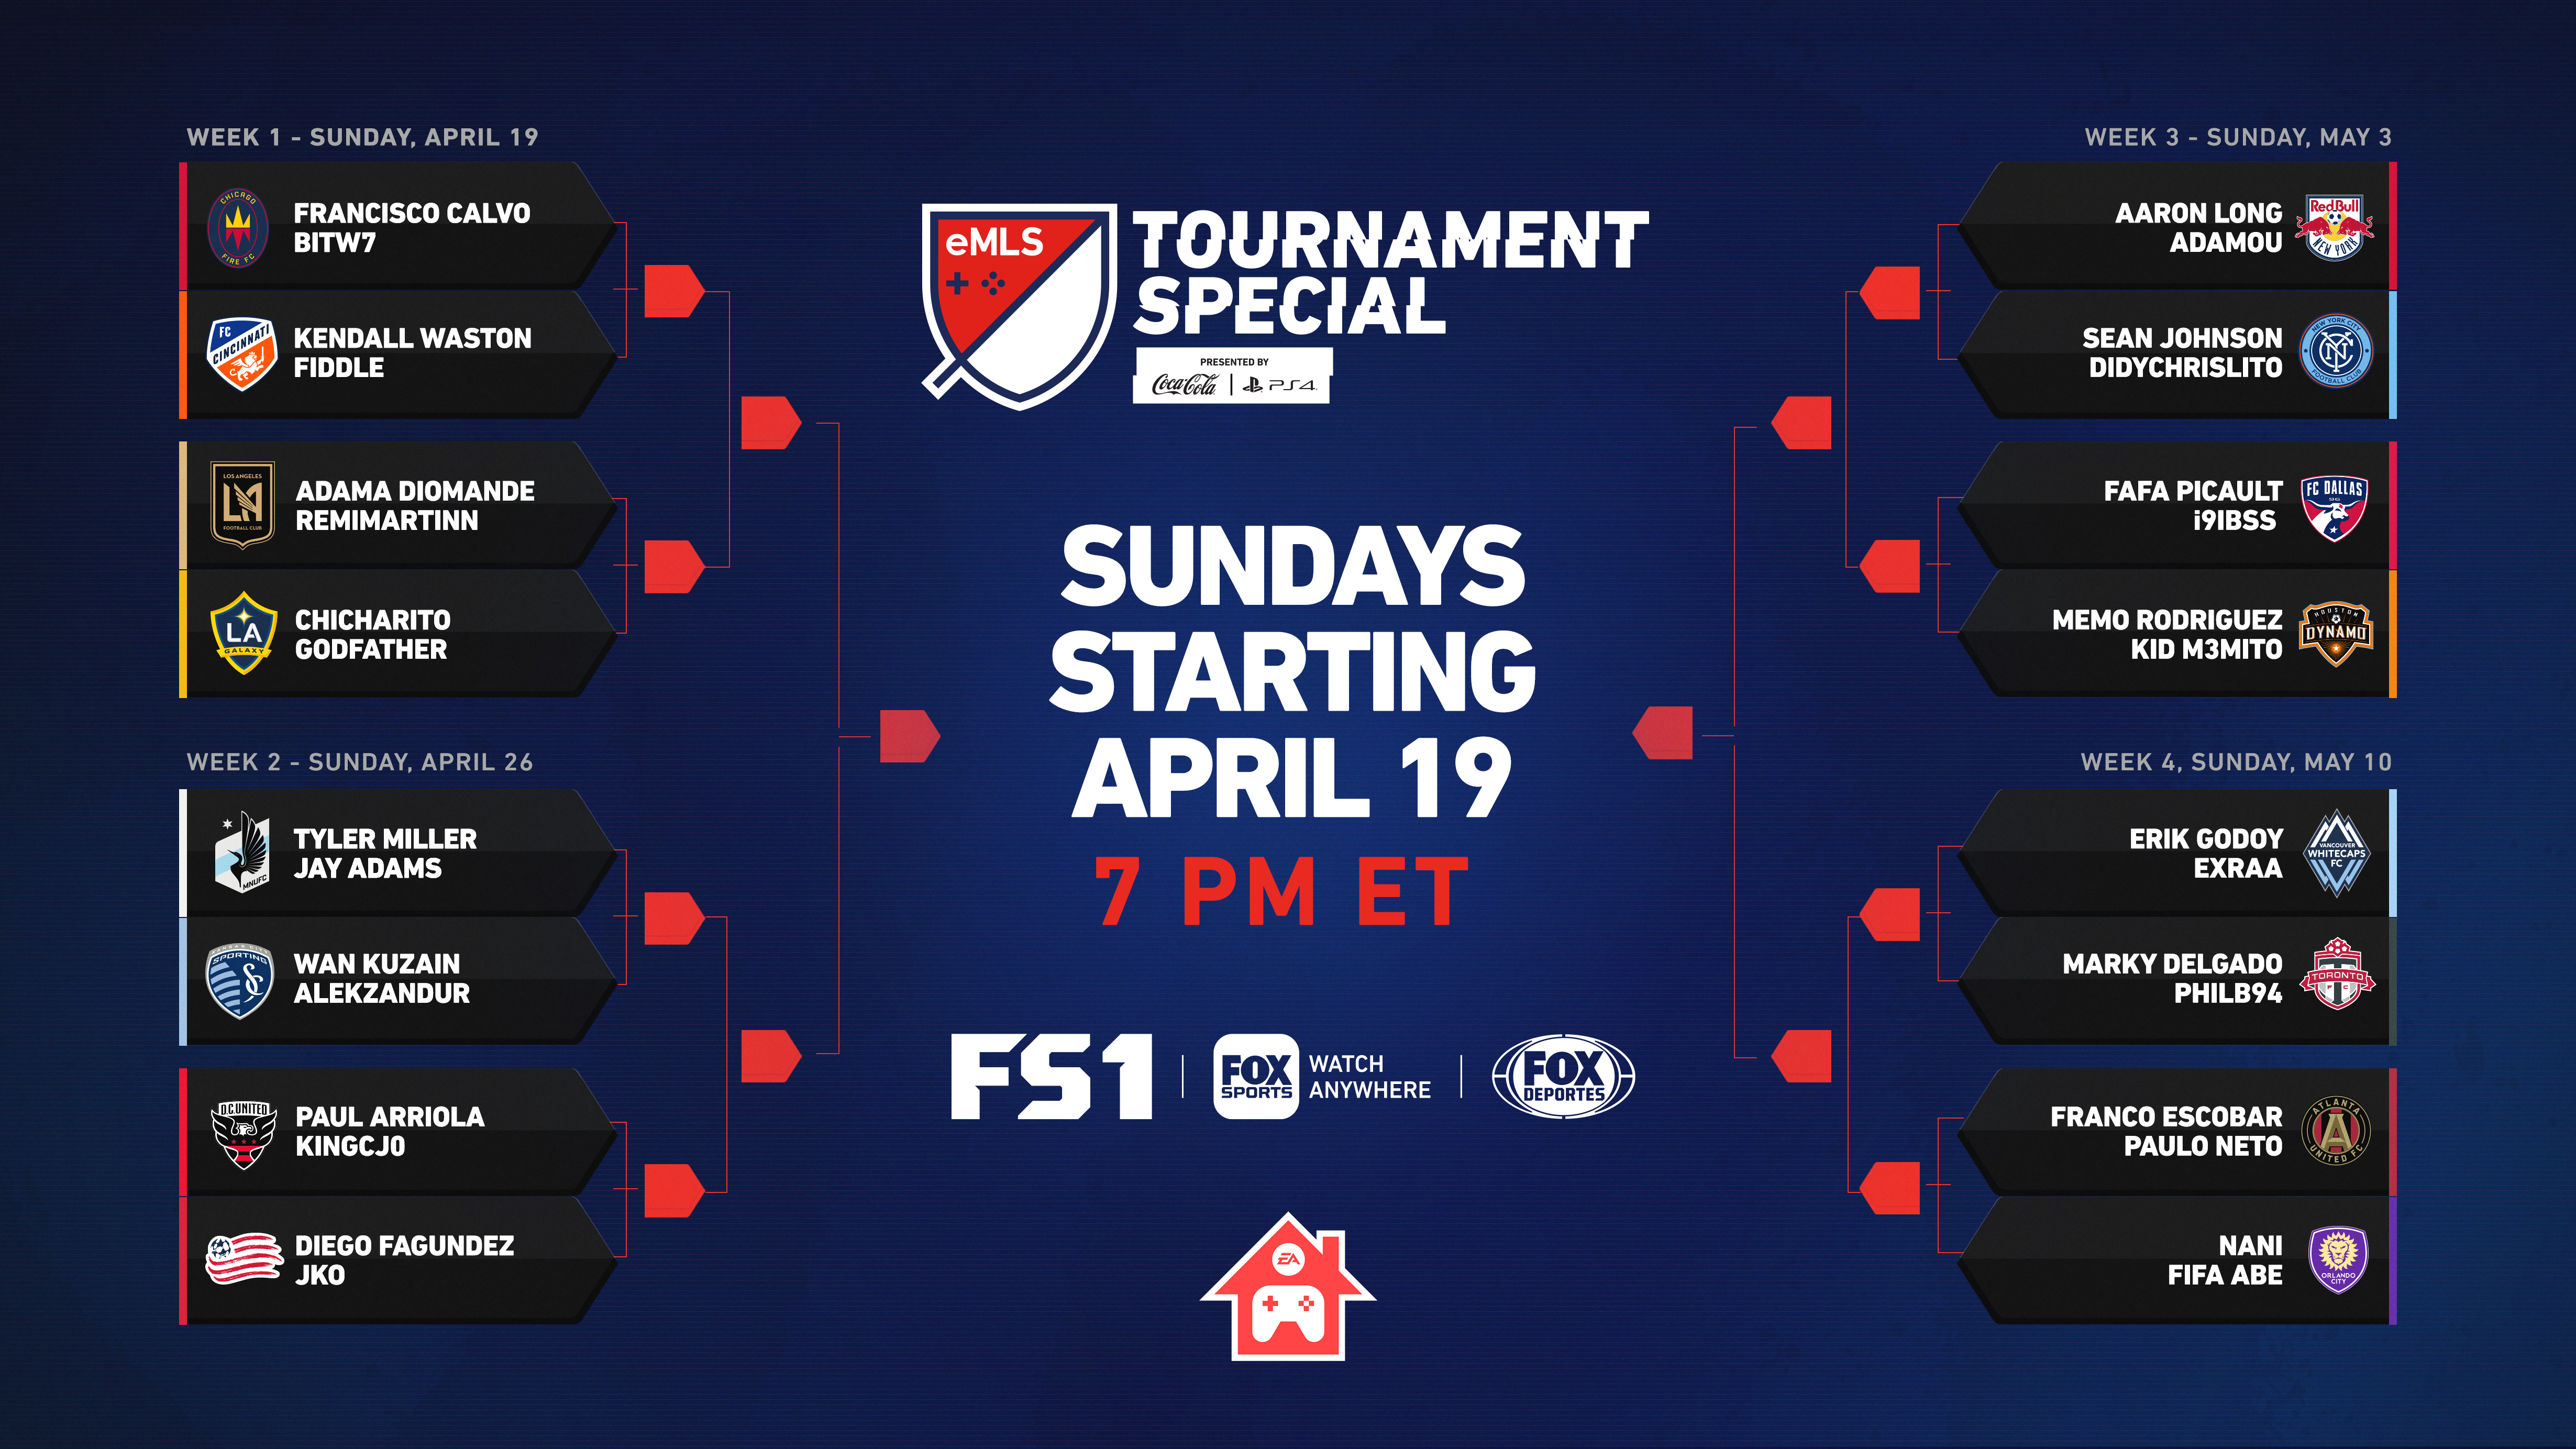 Major League Soccer And Fox Sports Launch Emls Tournament Special Presented By Coca Cola And Playstation Sunday April 19 On Fs1 And Fox Deportes Fox Sports Presspass